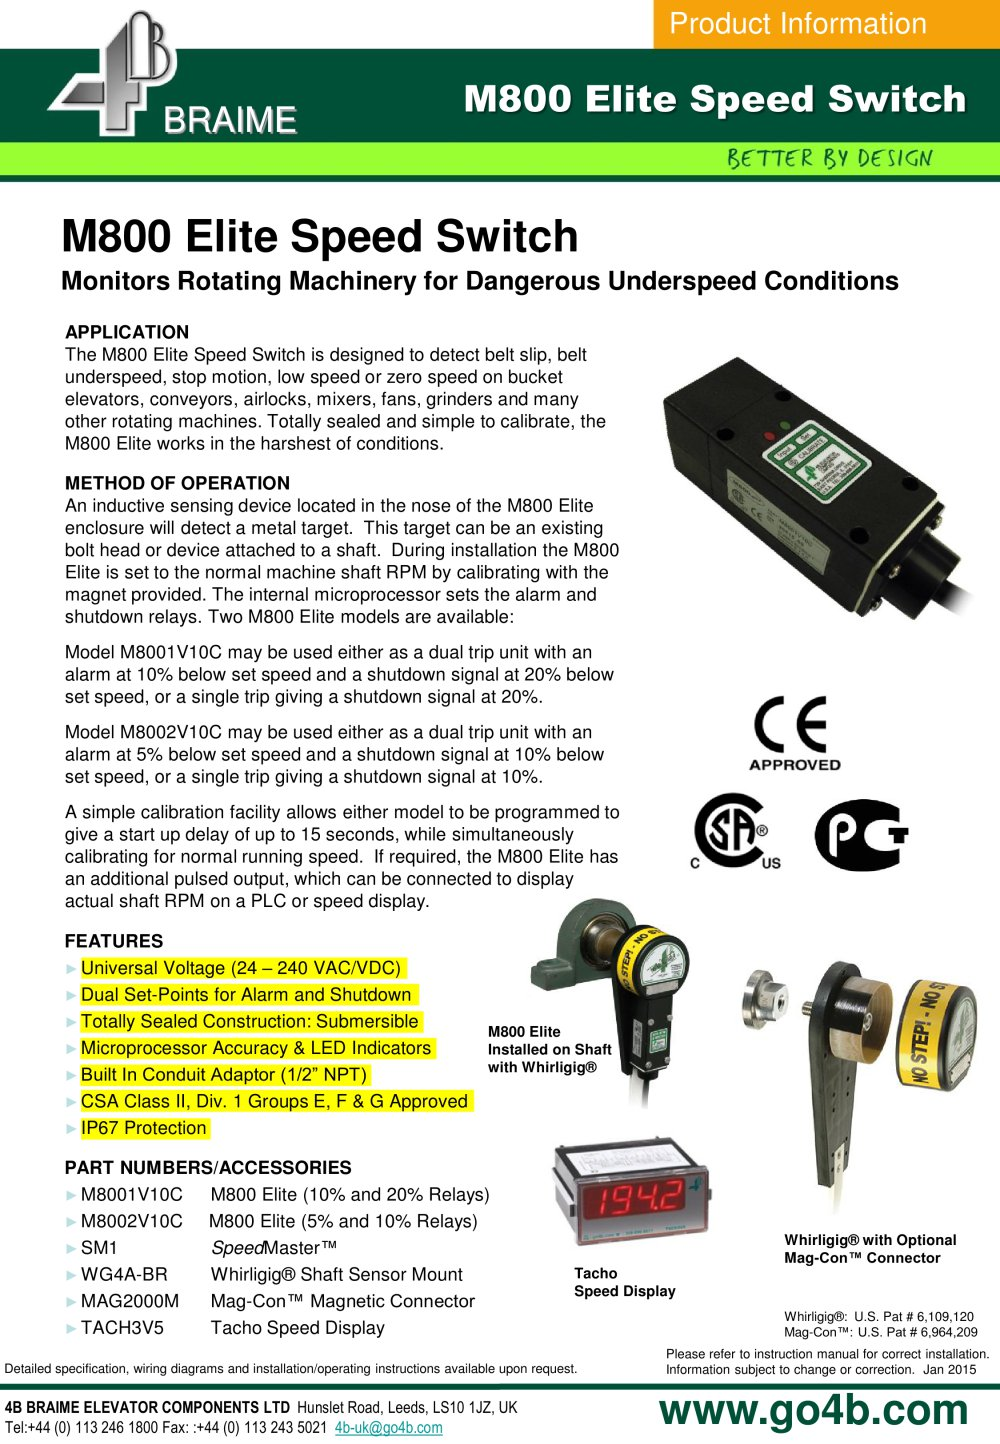 M800 Speedswitch - underspeed motion monitor - 1 / 2 Pages